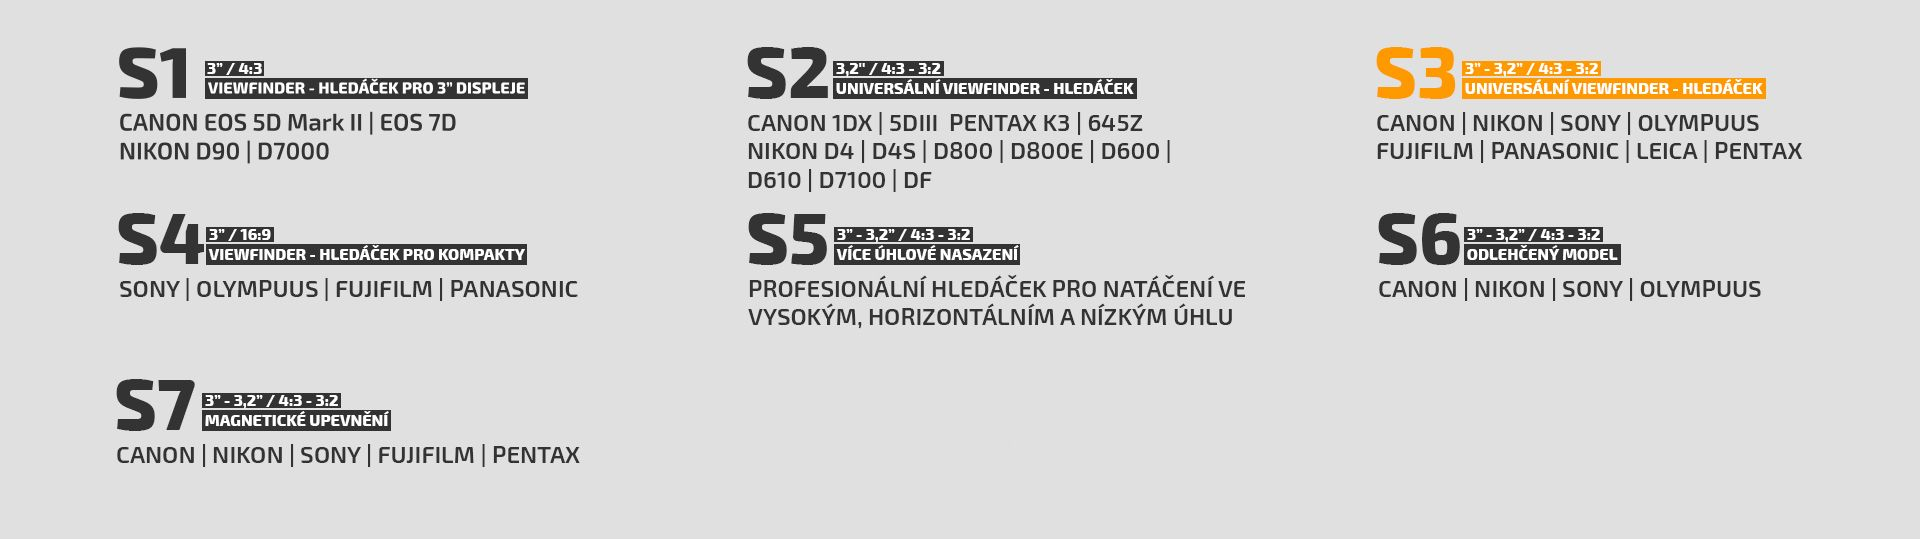 film-technika-ggs-hledacek-s3-intext5-2